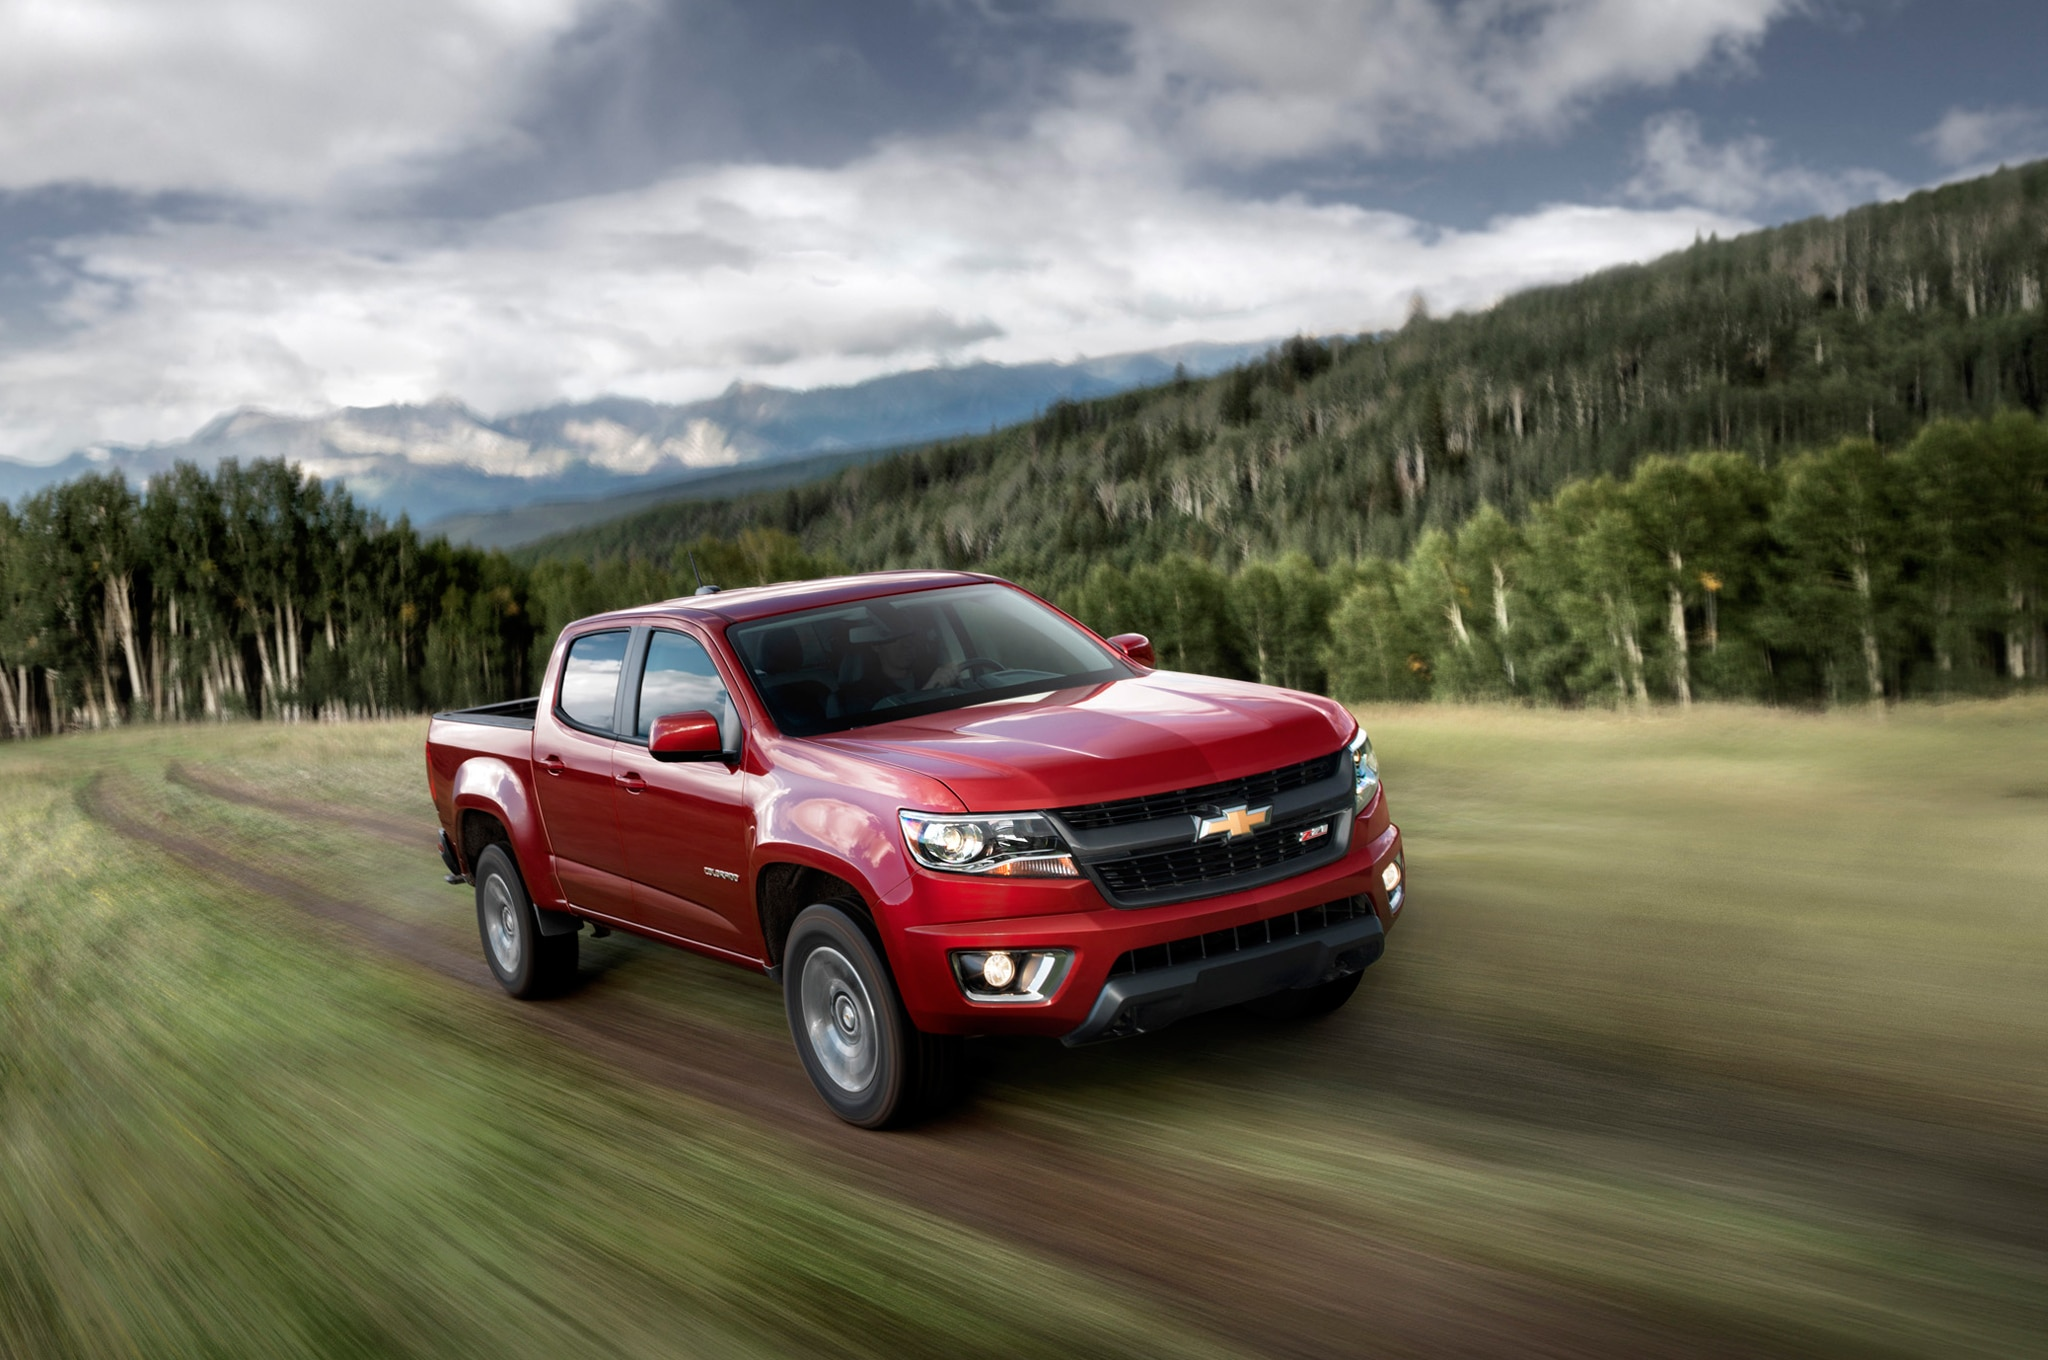 2015 Chevrolet Colorado Front End In Motion1